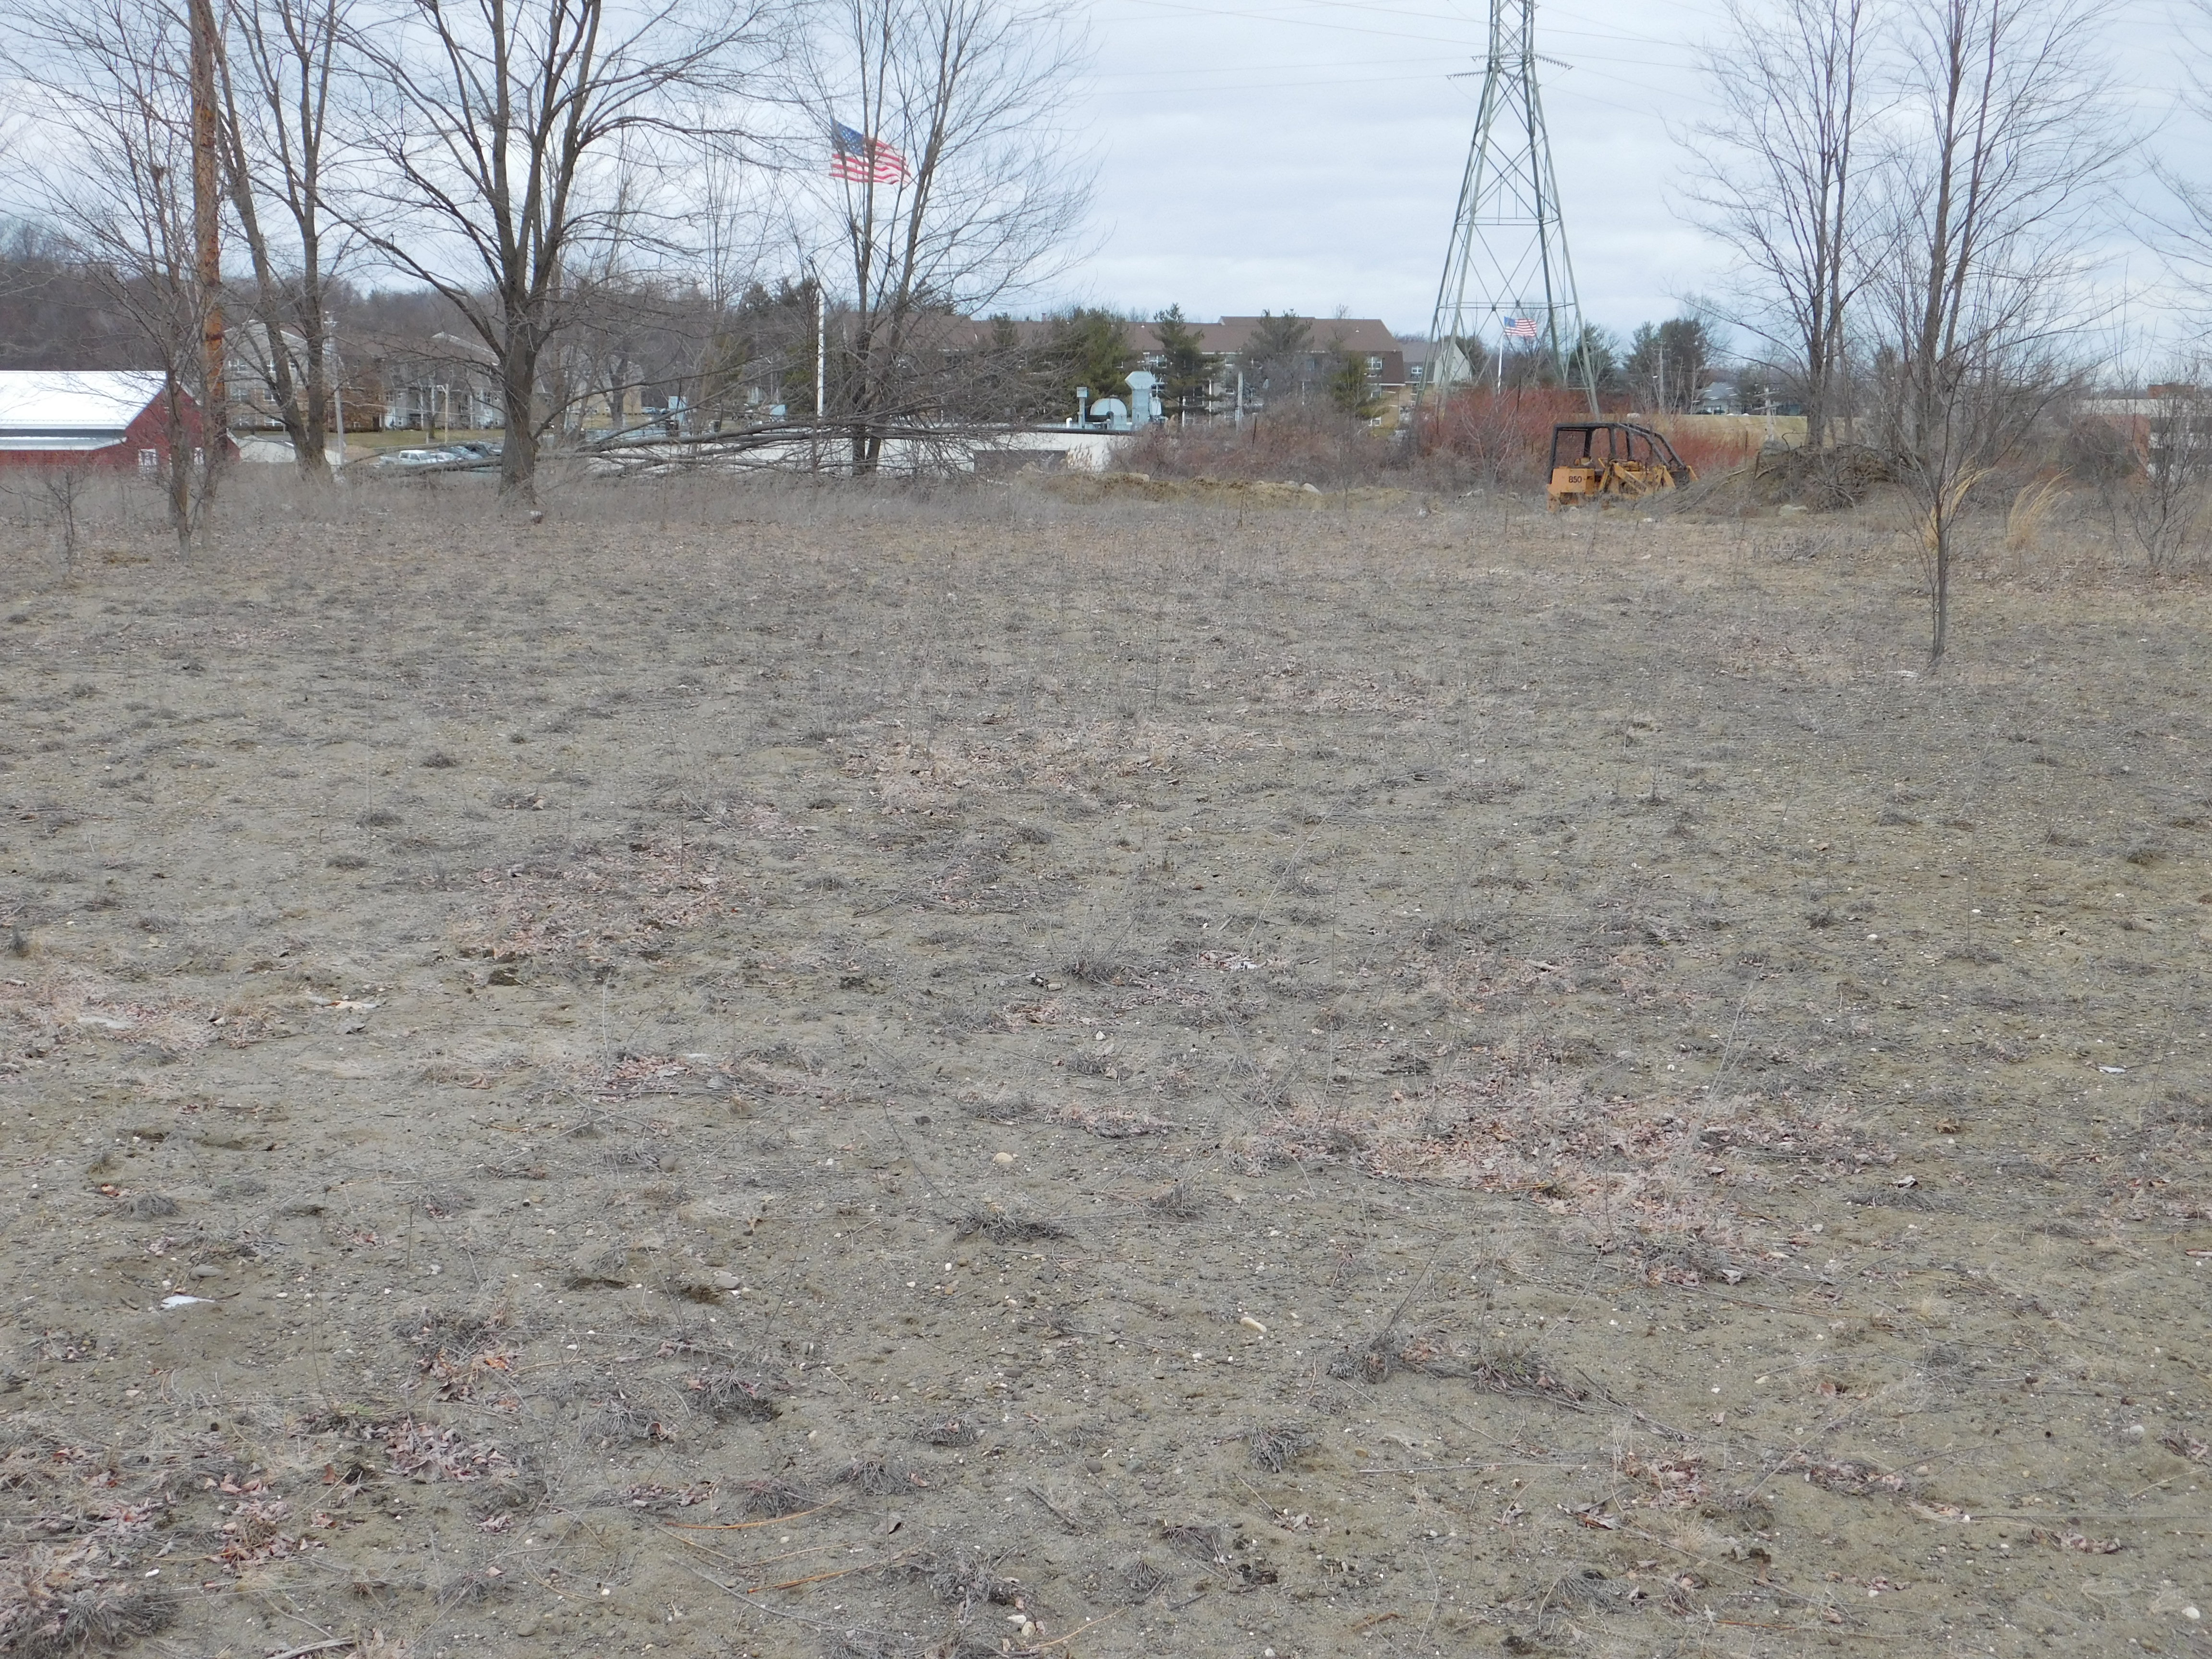 Commercial Lot – Price Reduced! 1.9 Acres 22-32 James P. Kelly Way, Middletown, NY